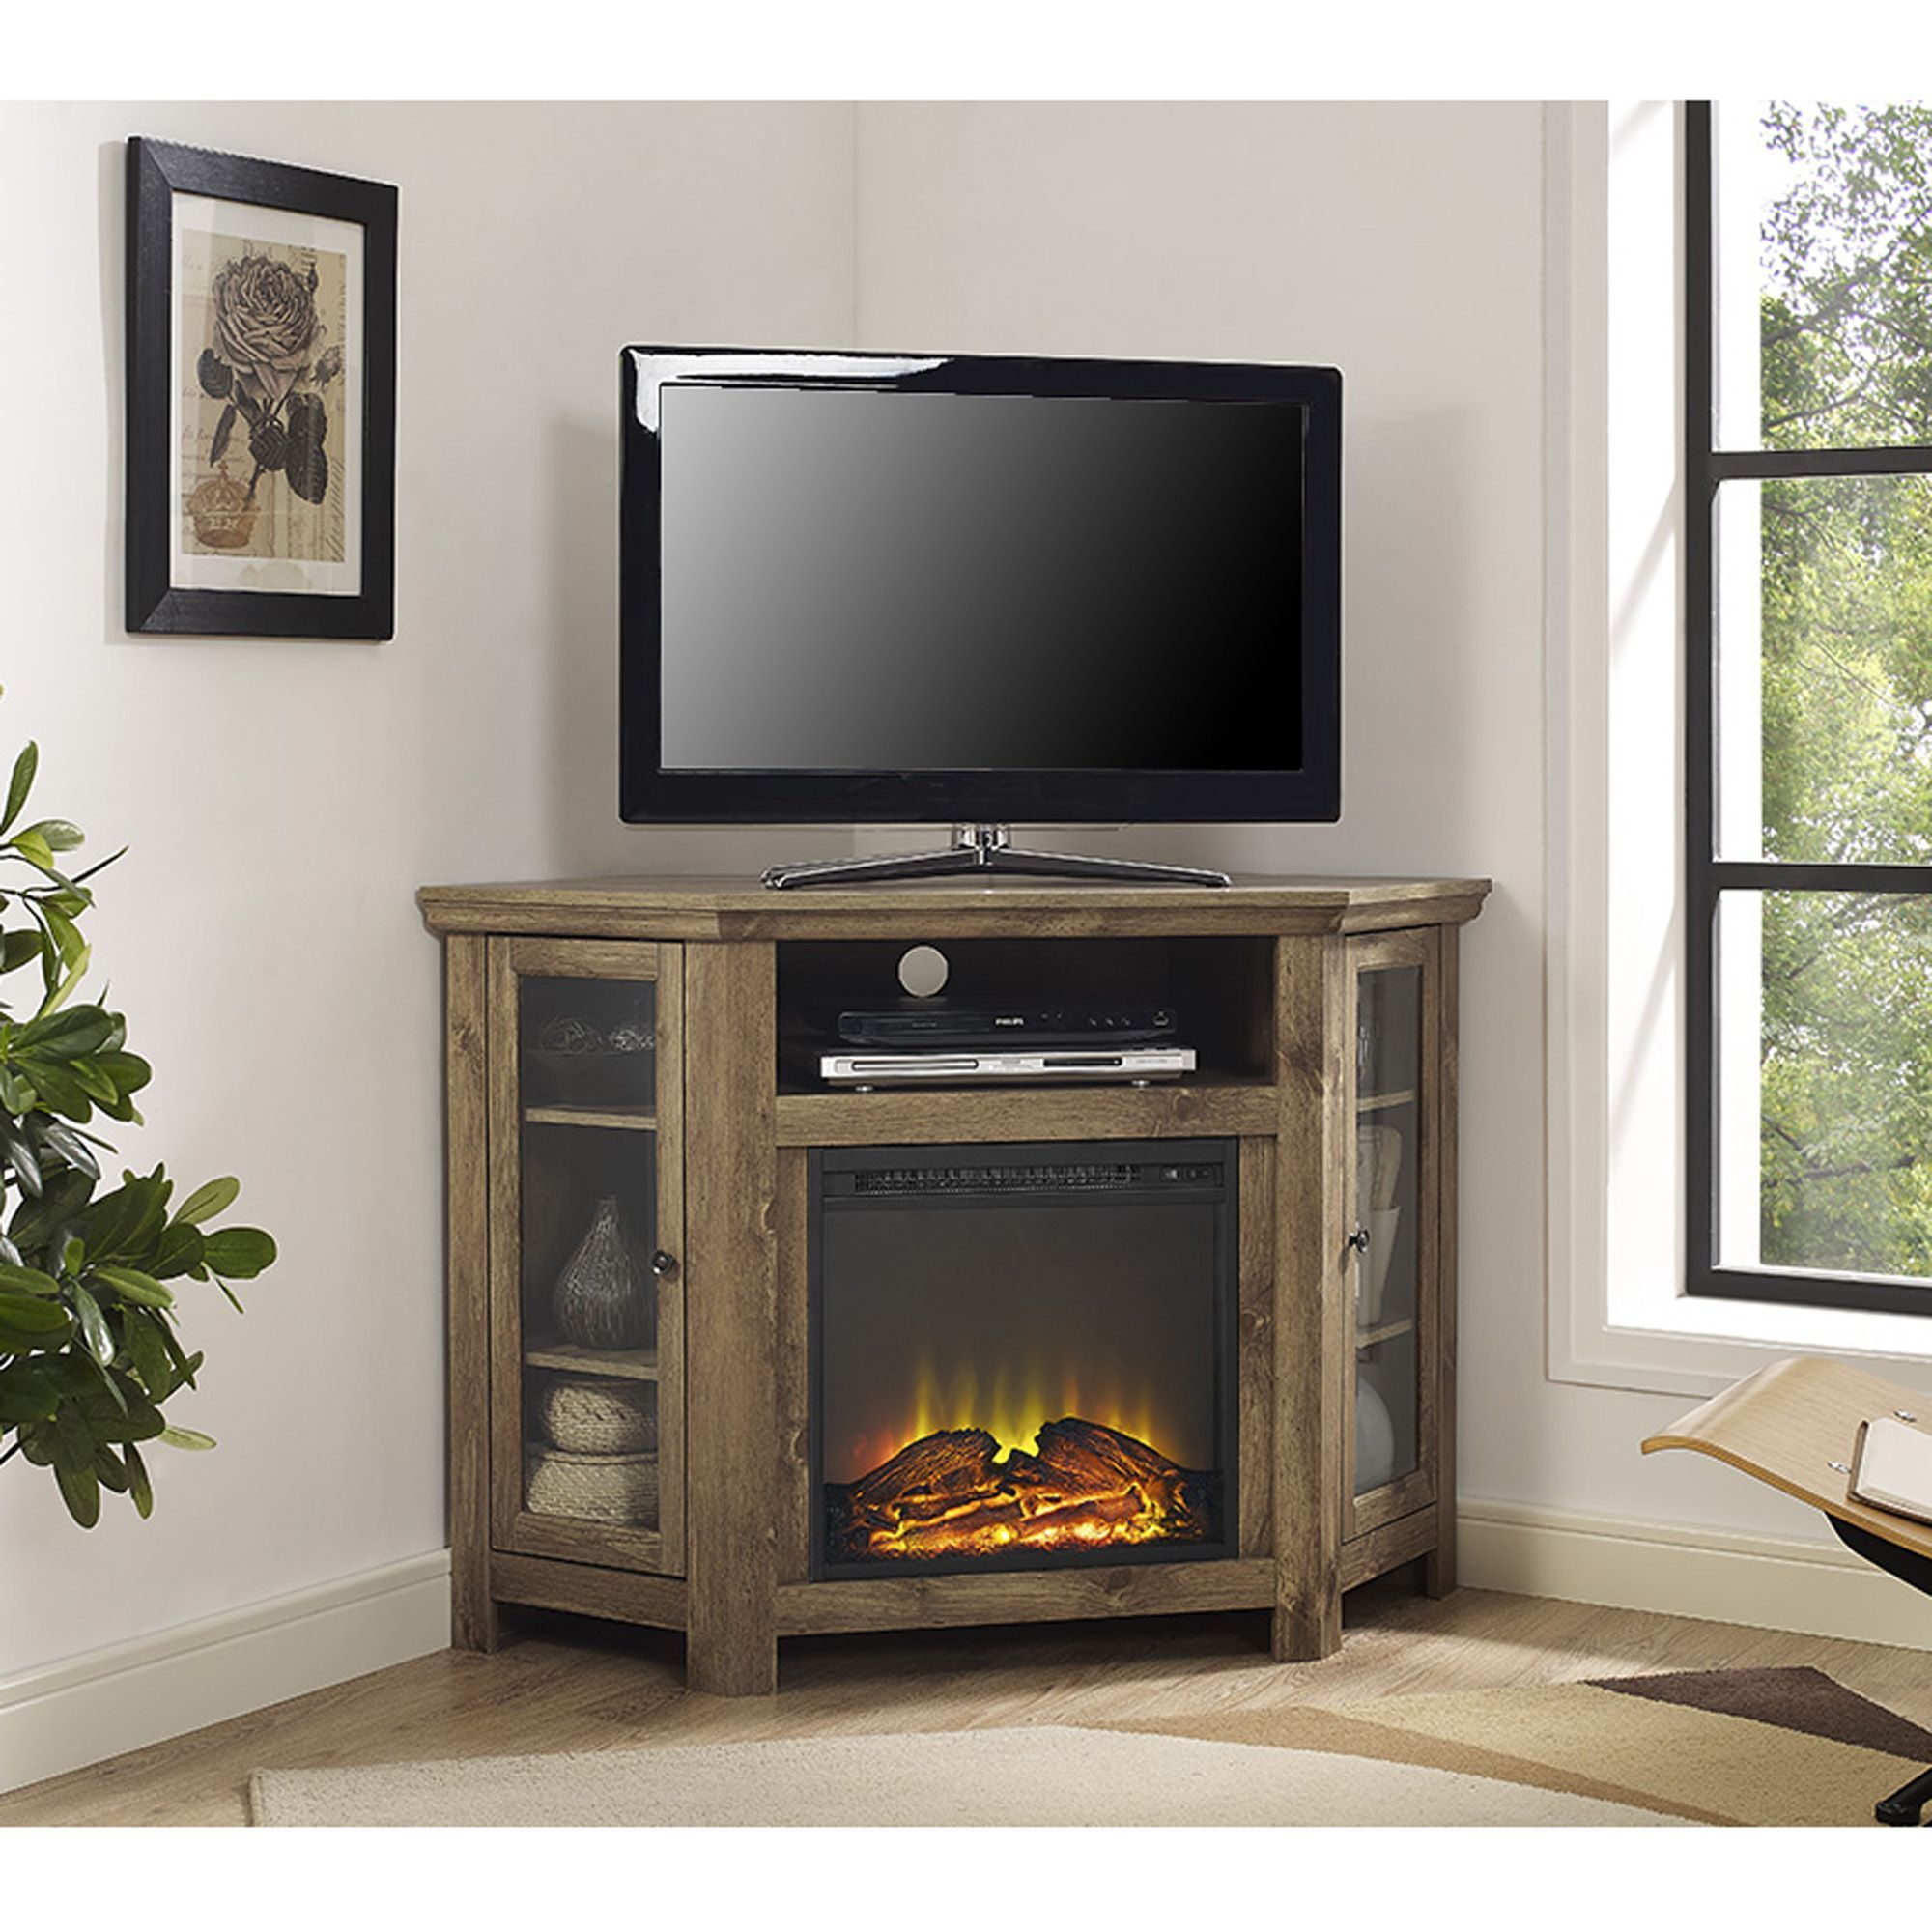 New Altra 18 Inch Electric Fireplace Insert Model F18v66l For